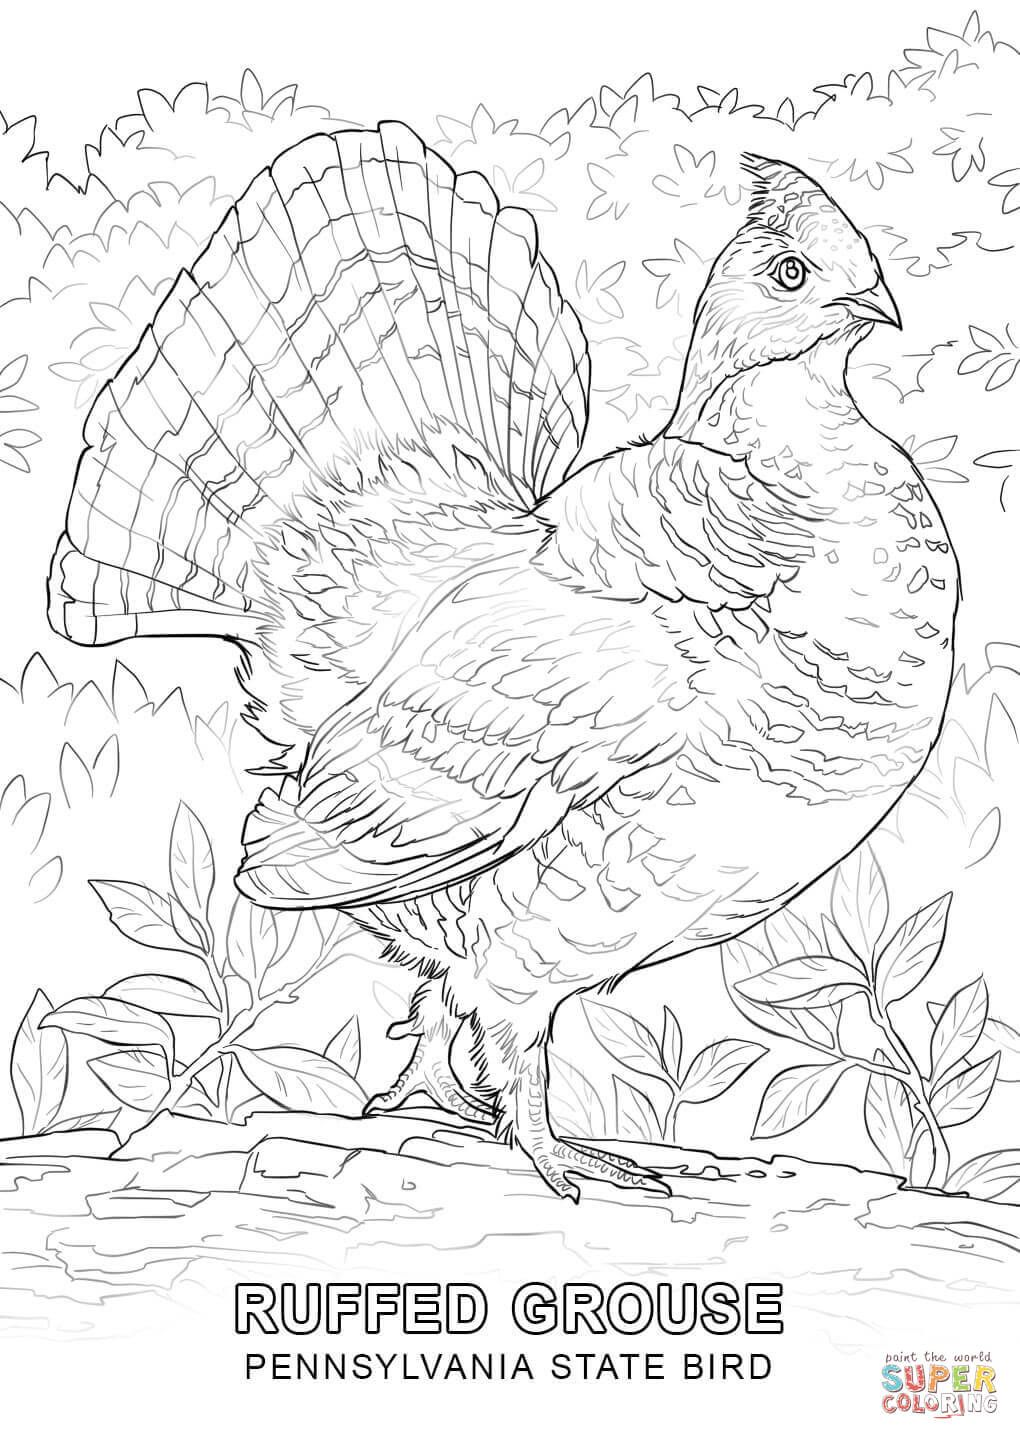 Pin by Frances Vance on Coloring | Bird coloring pages, Free ...